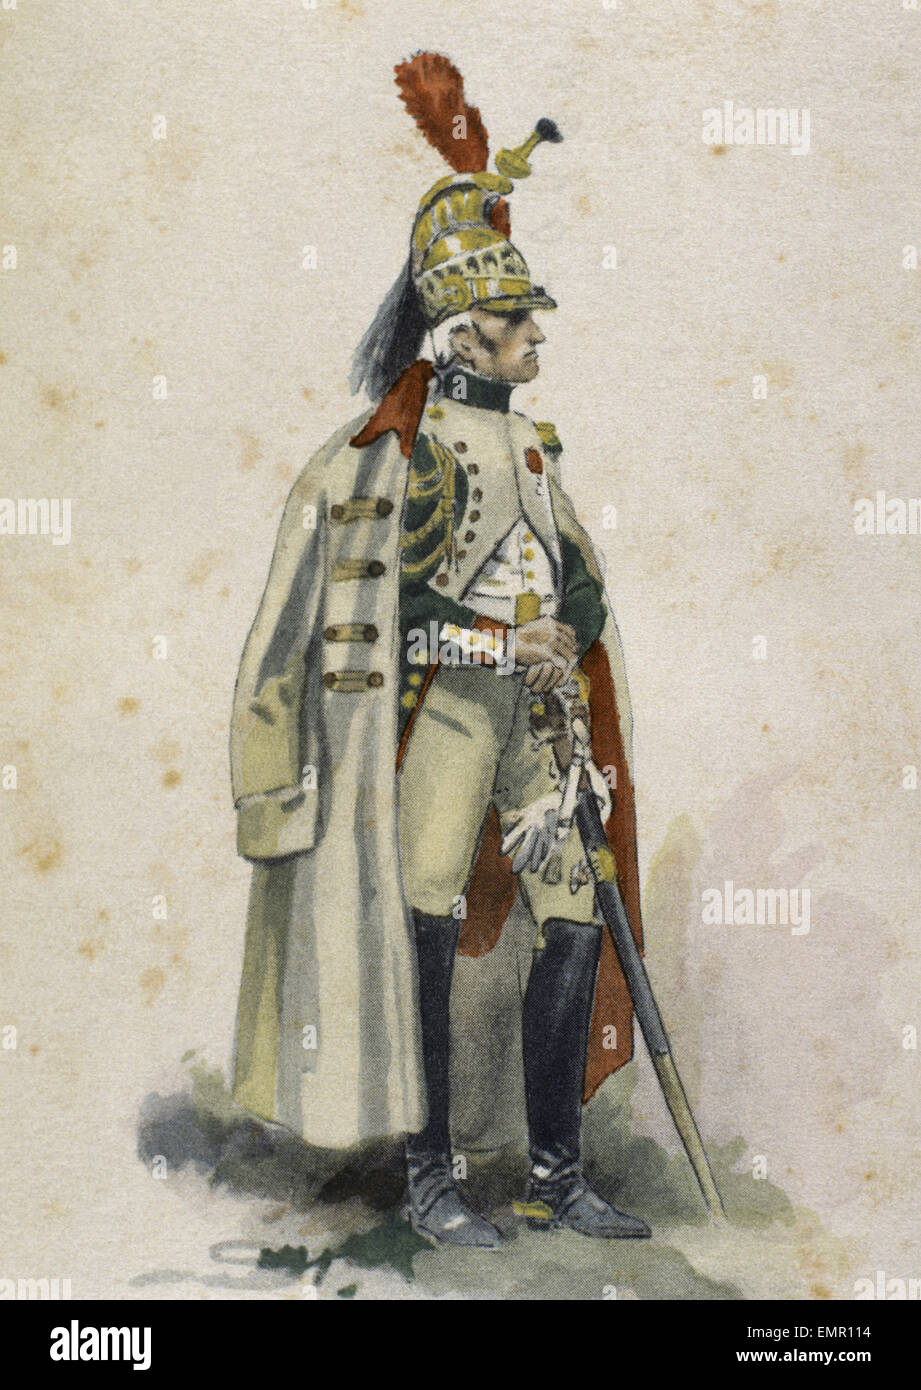 French Dragoon. French Army. Napoleonic Empire. 1807. Engraving. Colored. - Stock Image